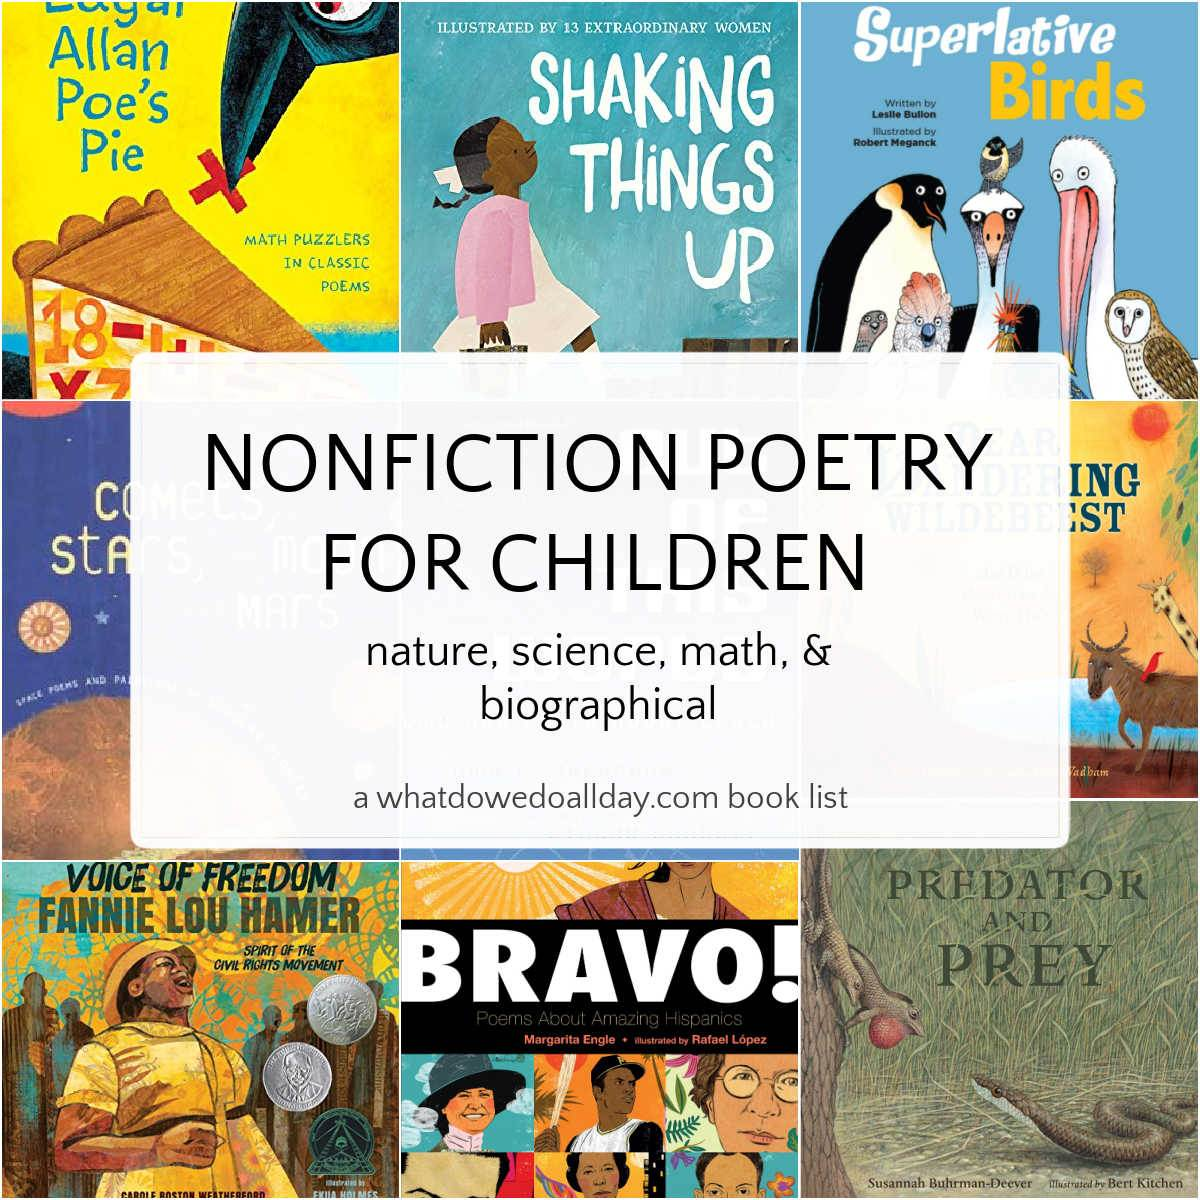 collage of book covers featuring nonfiction poetry for kids